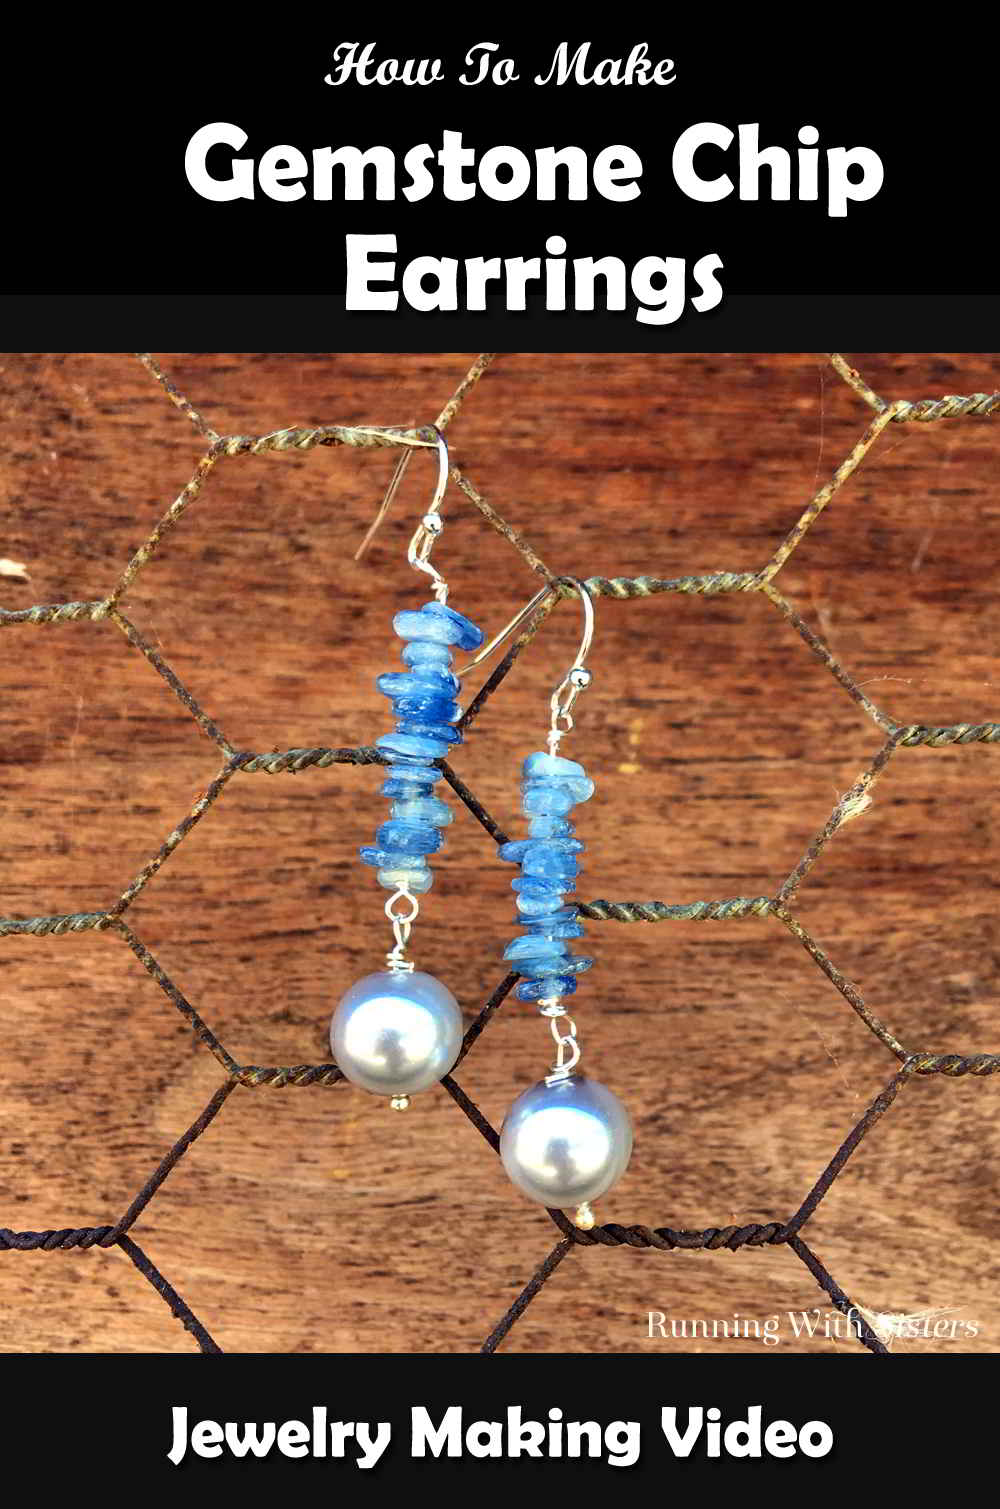 Make a pair of Gemstone Chip Earrings with gemstone chips and pearls. In this video we'll show you how to make your own jewelry with gemstone chips.